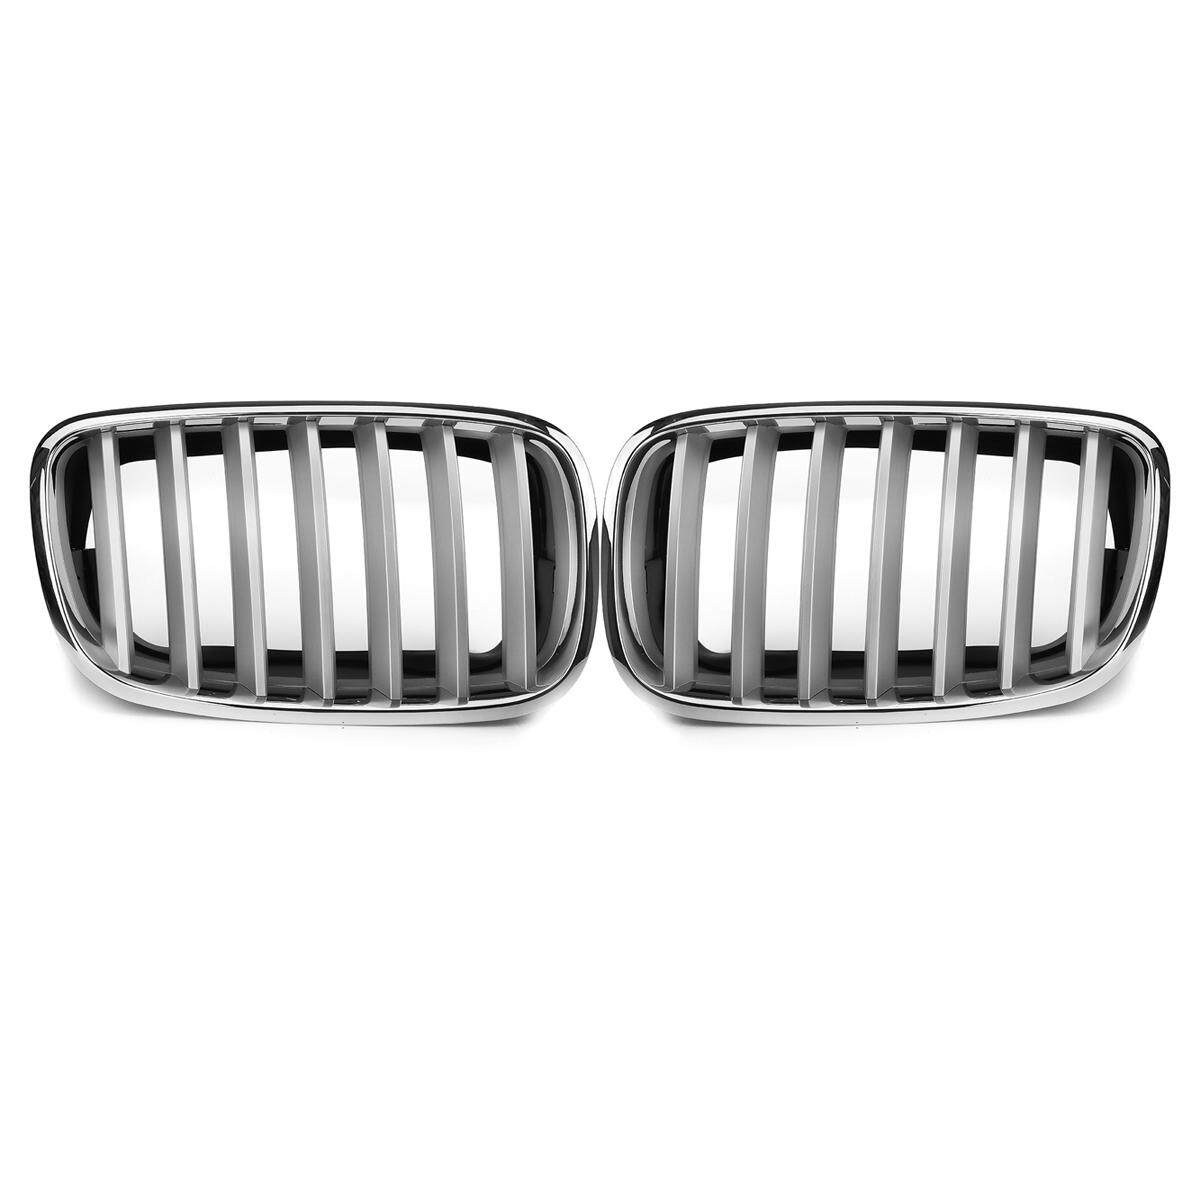 PAIR For BMW E70 E71 X5 X6 2007-2013 SILVER FRONT BUMPER KIDNEY GRILLE GRILLES